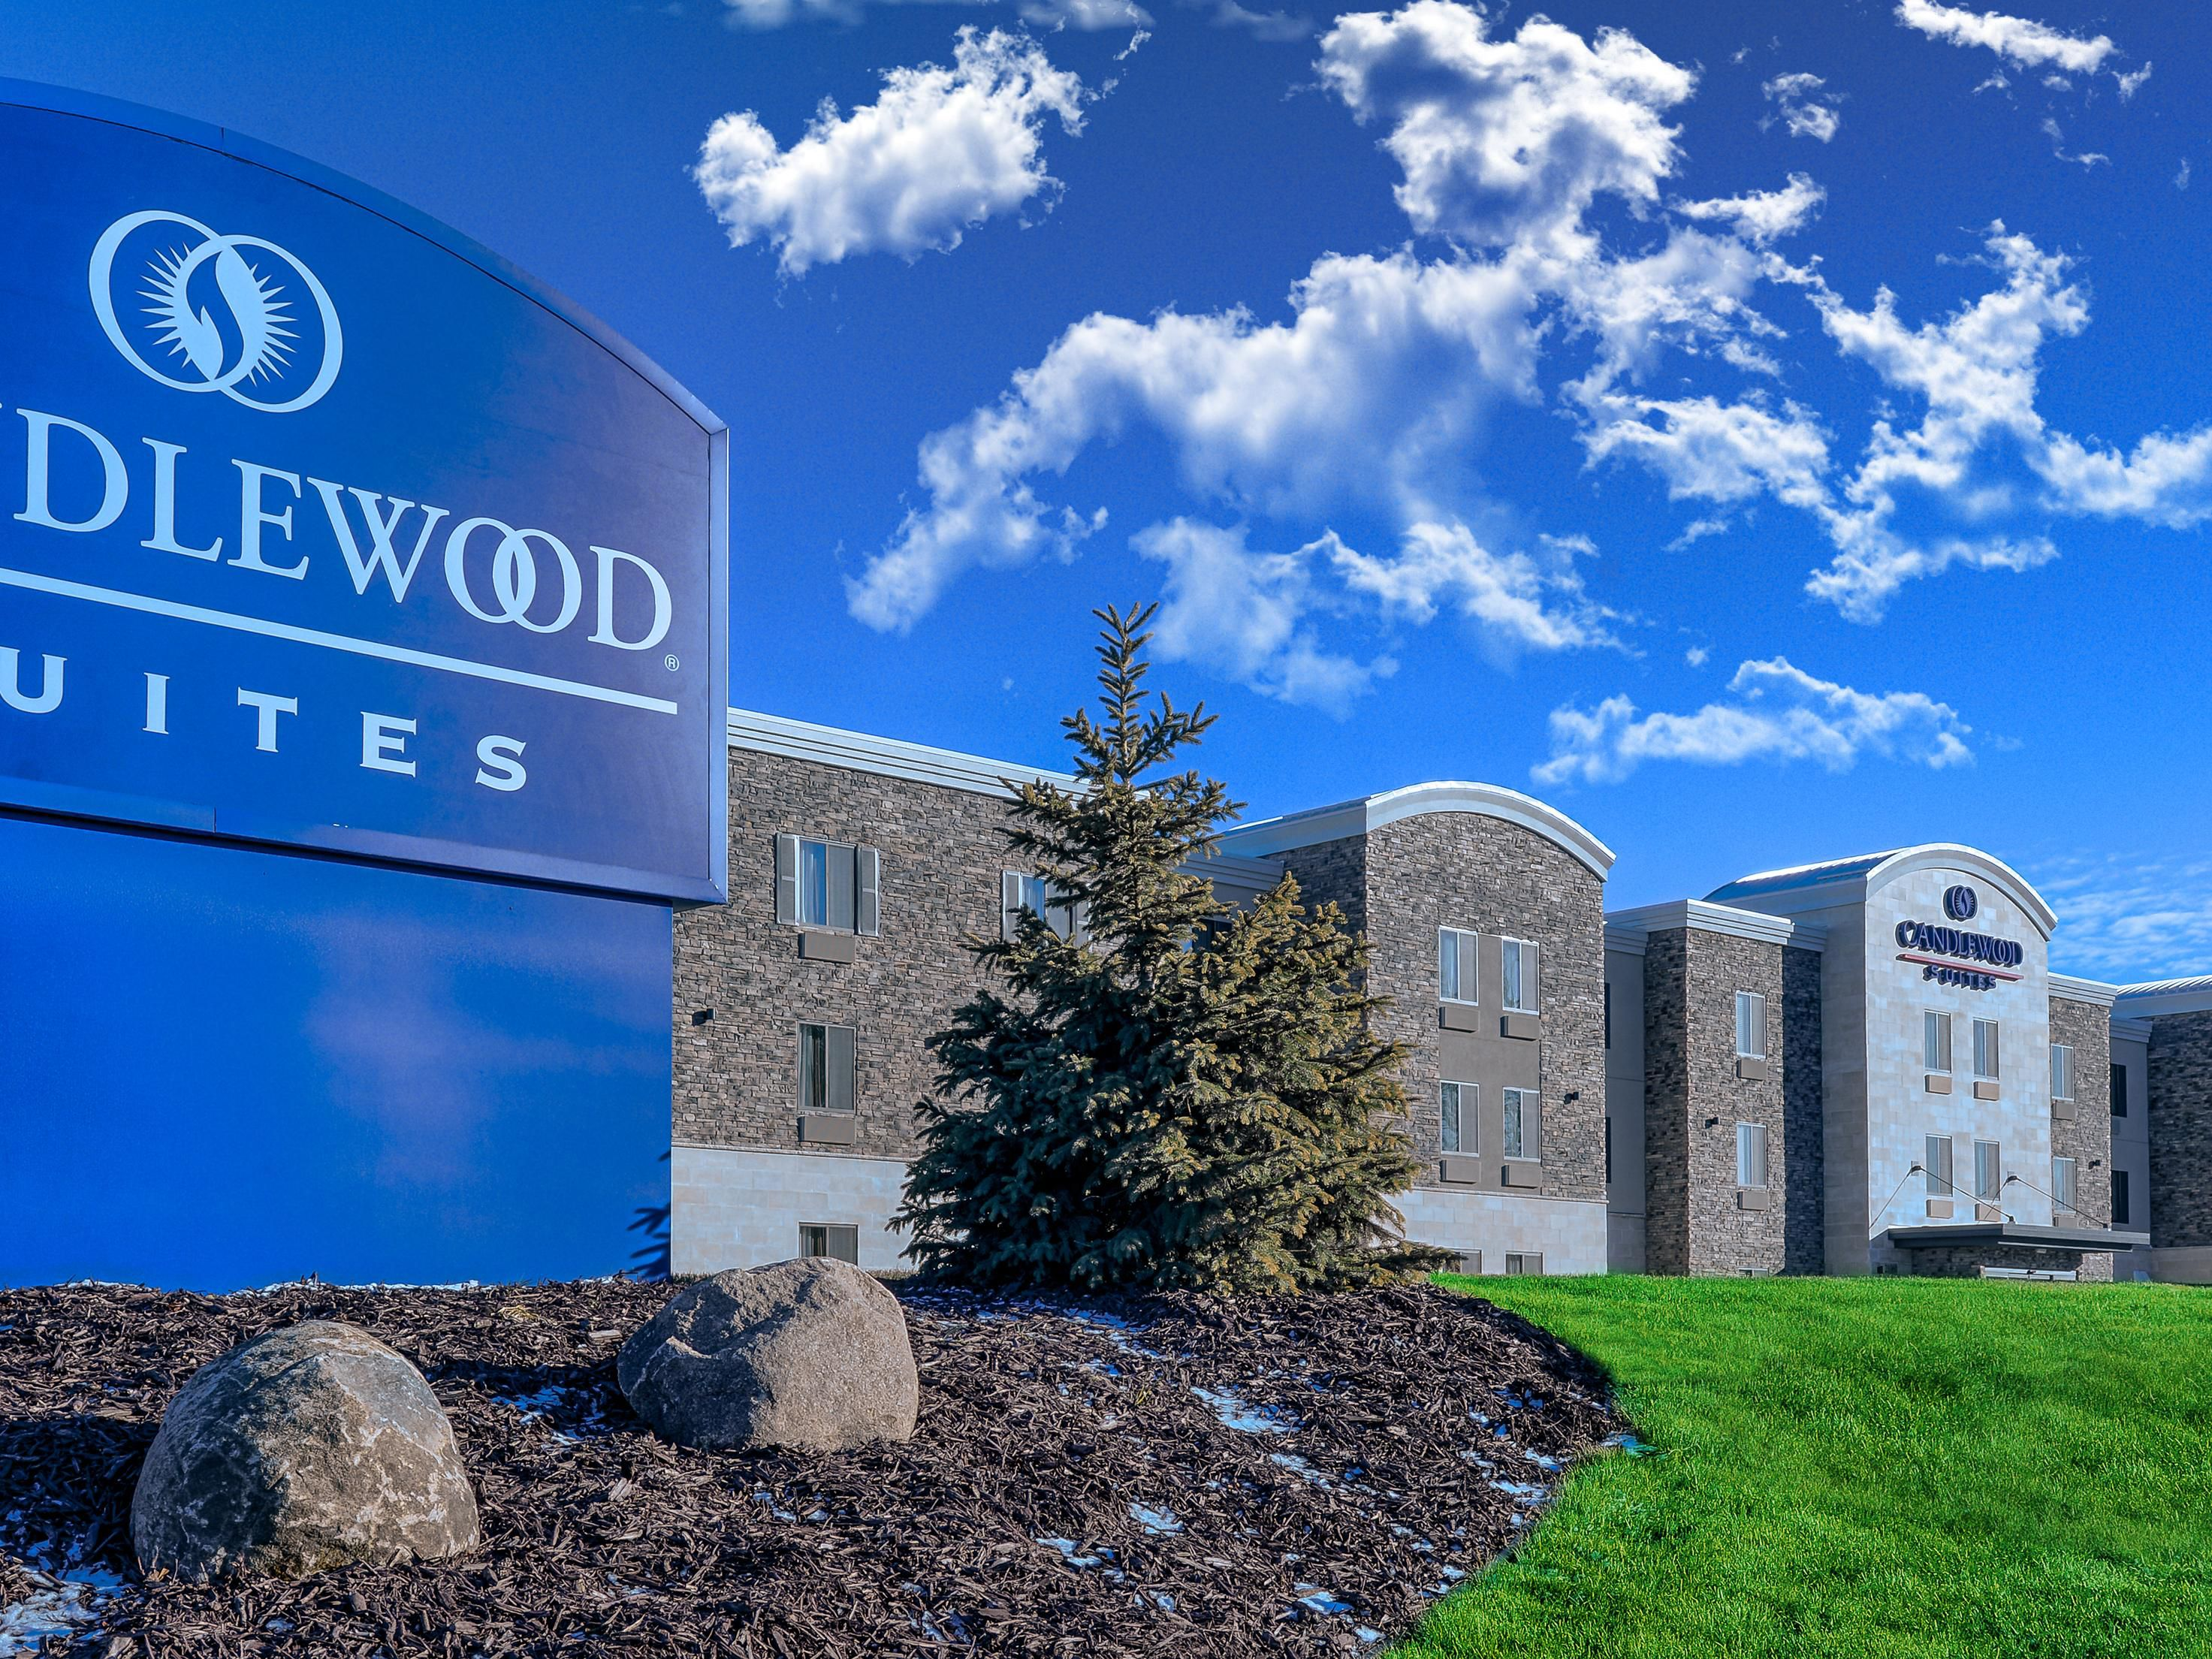 Lakeville Hotels Candlewood Suites I 35 Extended Stay Hotel In Minnesota